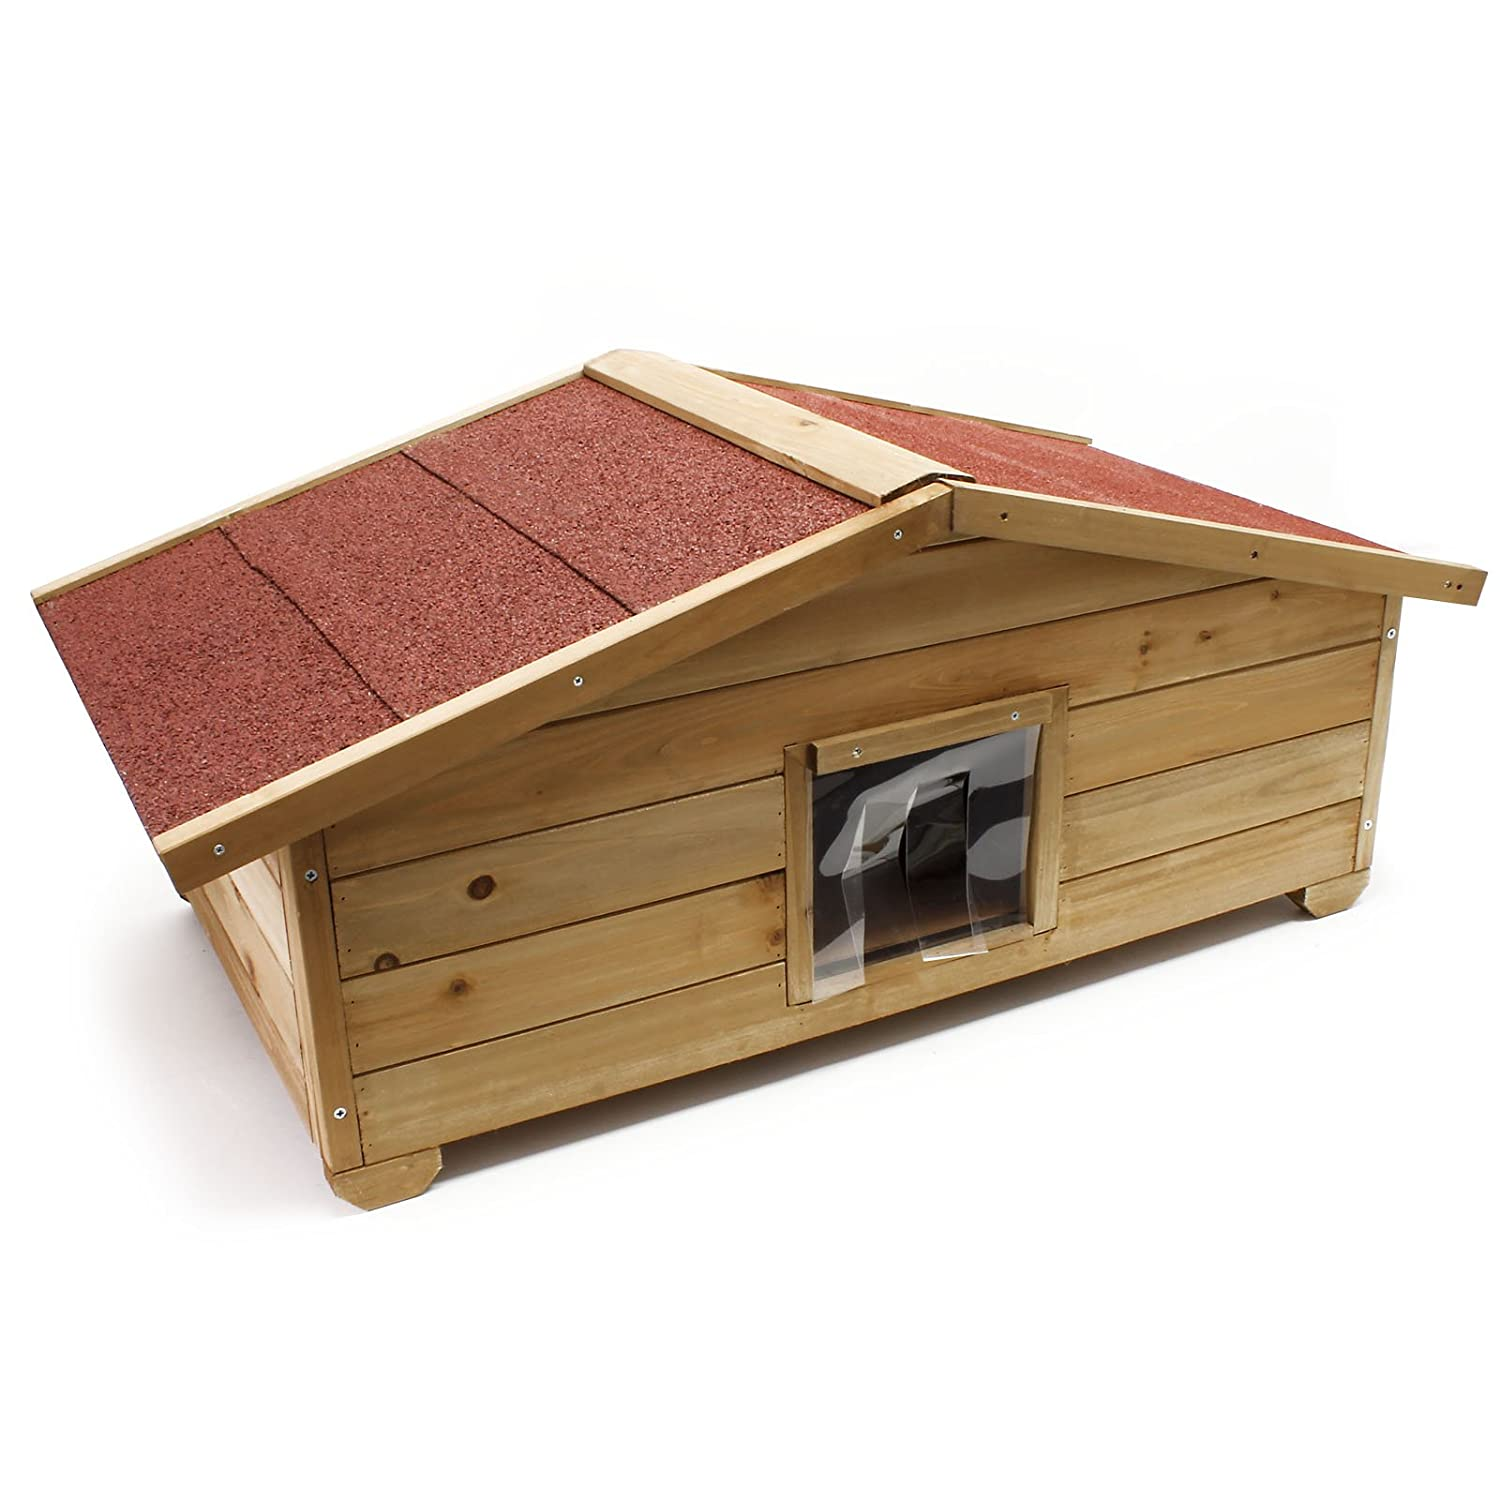 Wiltec Big, full isulated wooden cathouse for outdoor use including door and windows